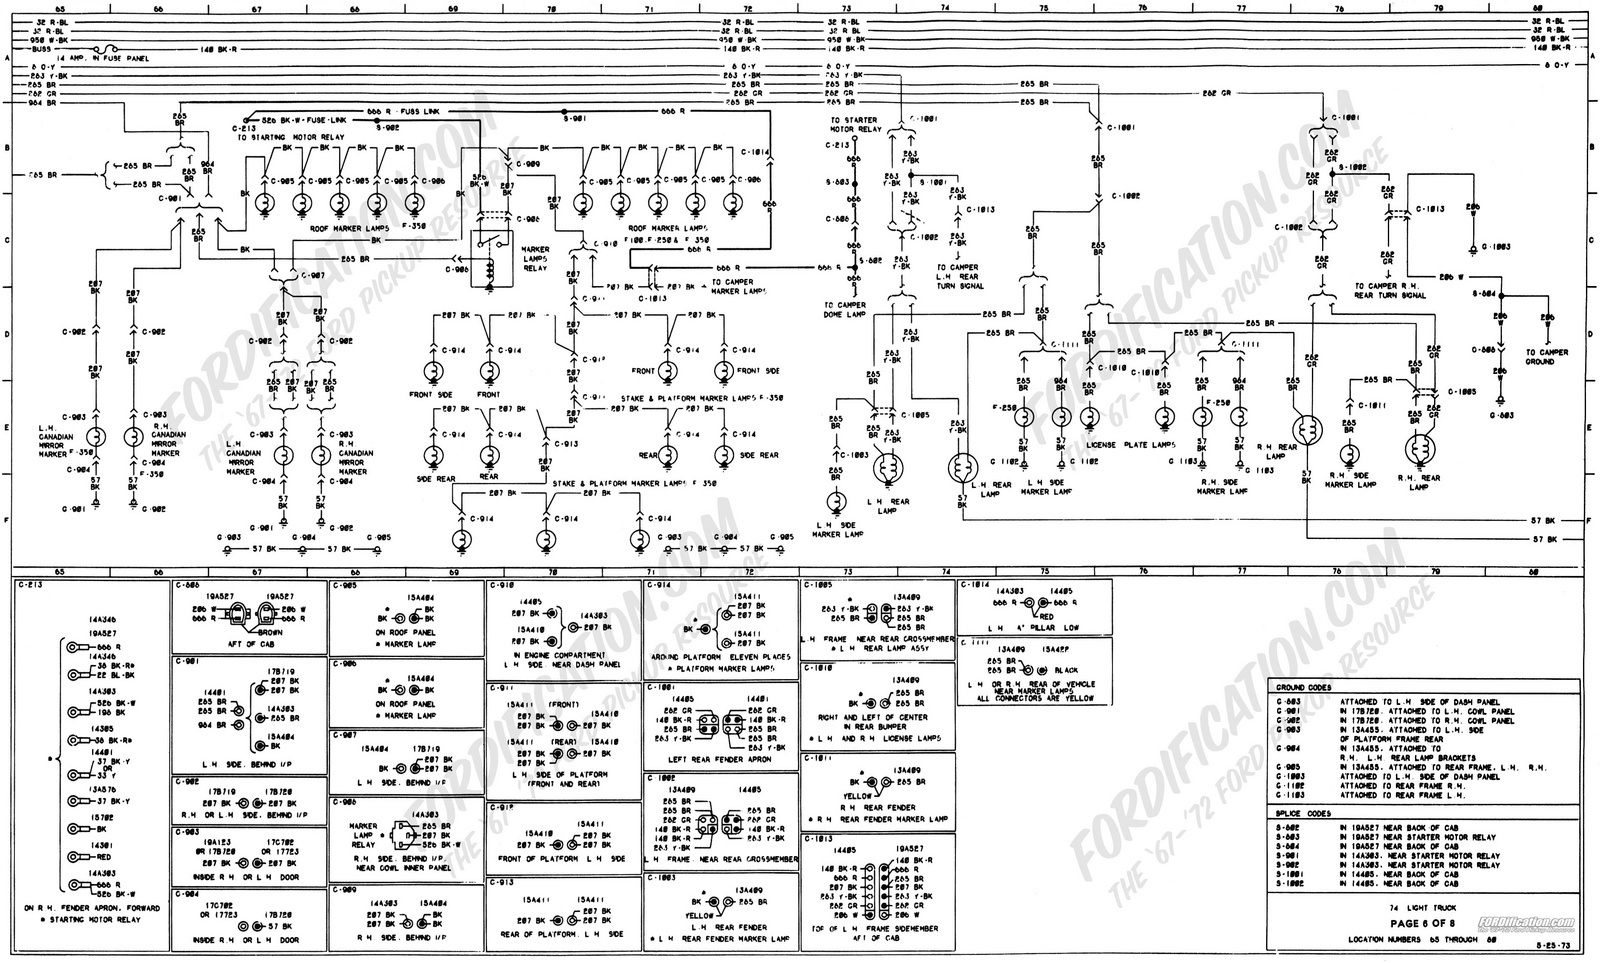 1989 Ford Ranger Tail Light Wiring Diagram Reveolution Of 2001 Dodge Ram 57 Truck Lights Detailed Schematics Rh Jvpacks Com Chevy Fuel Pump